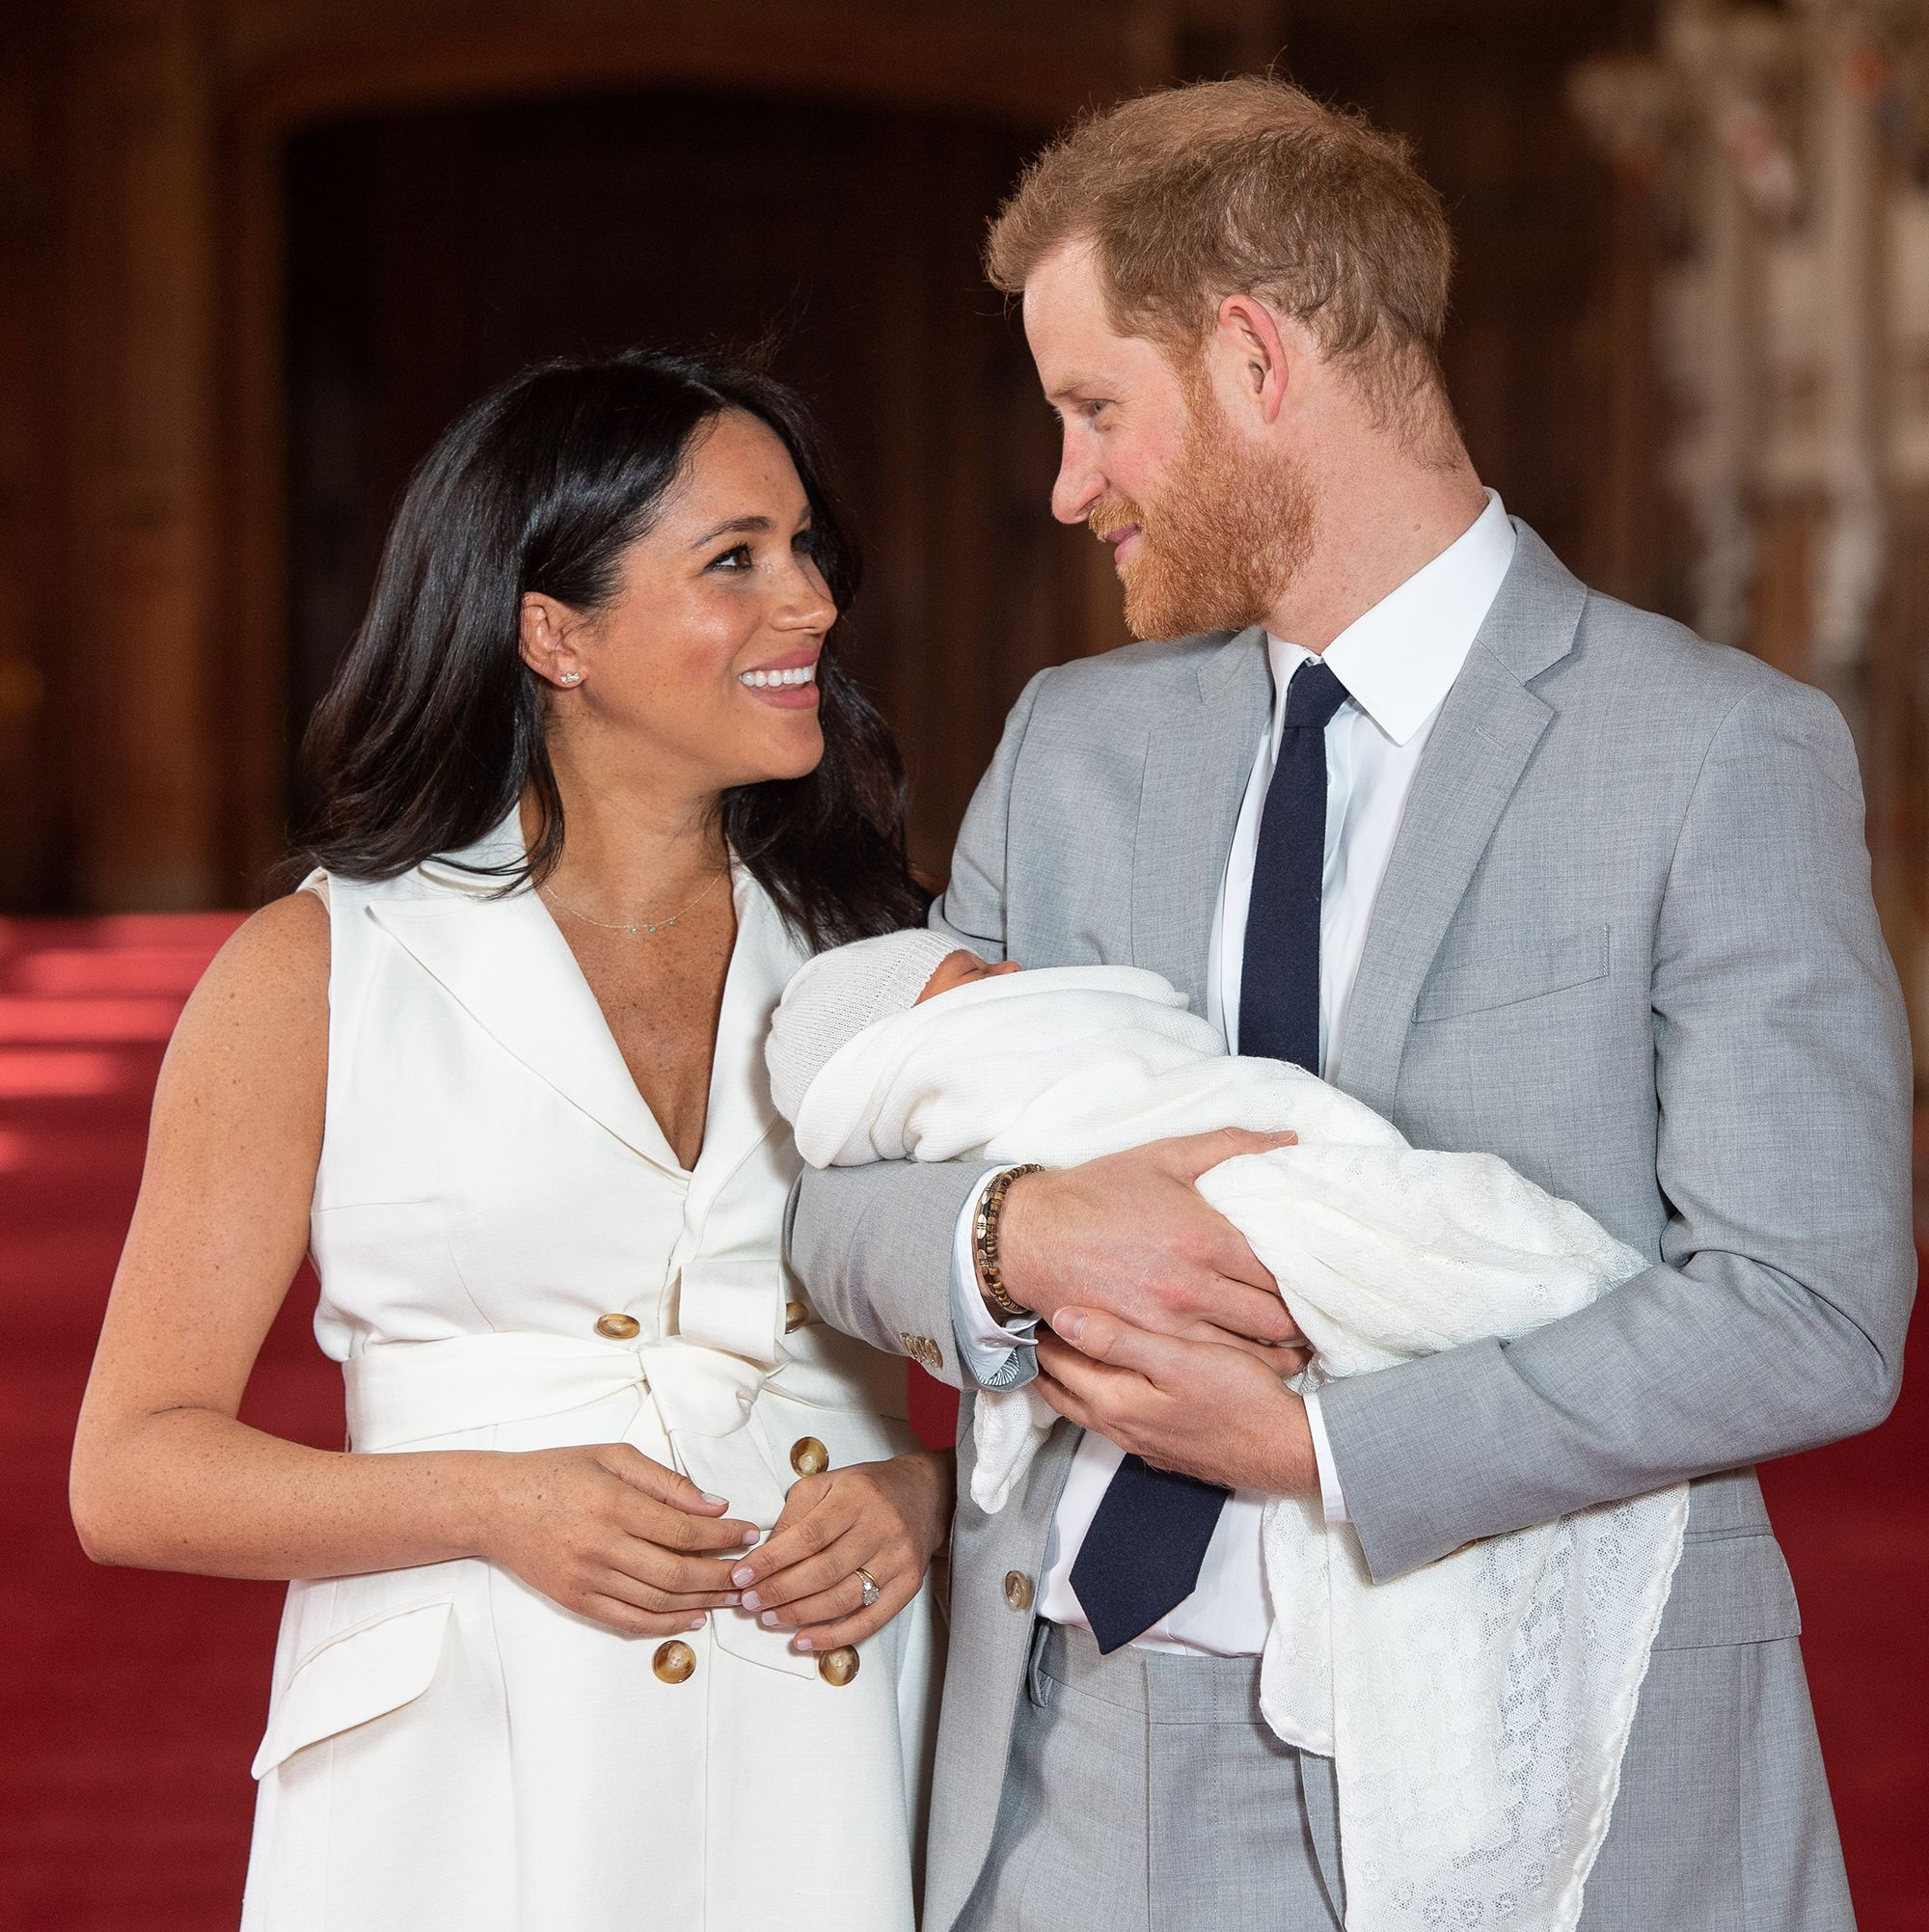 The sweet message Prince Harry whispered to Meghan before their photocall with Archie